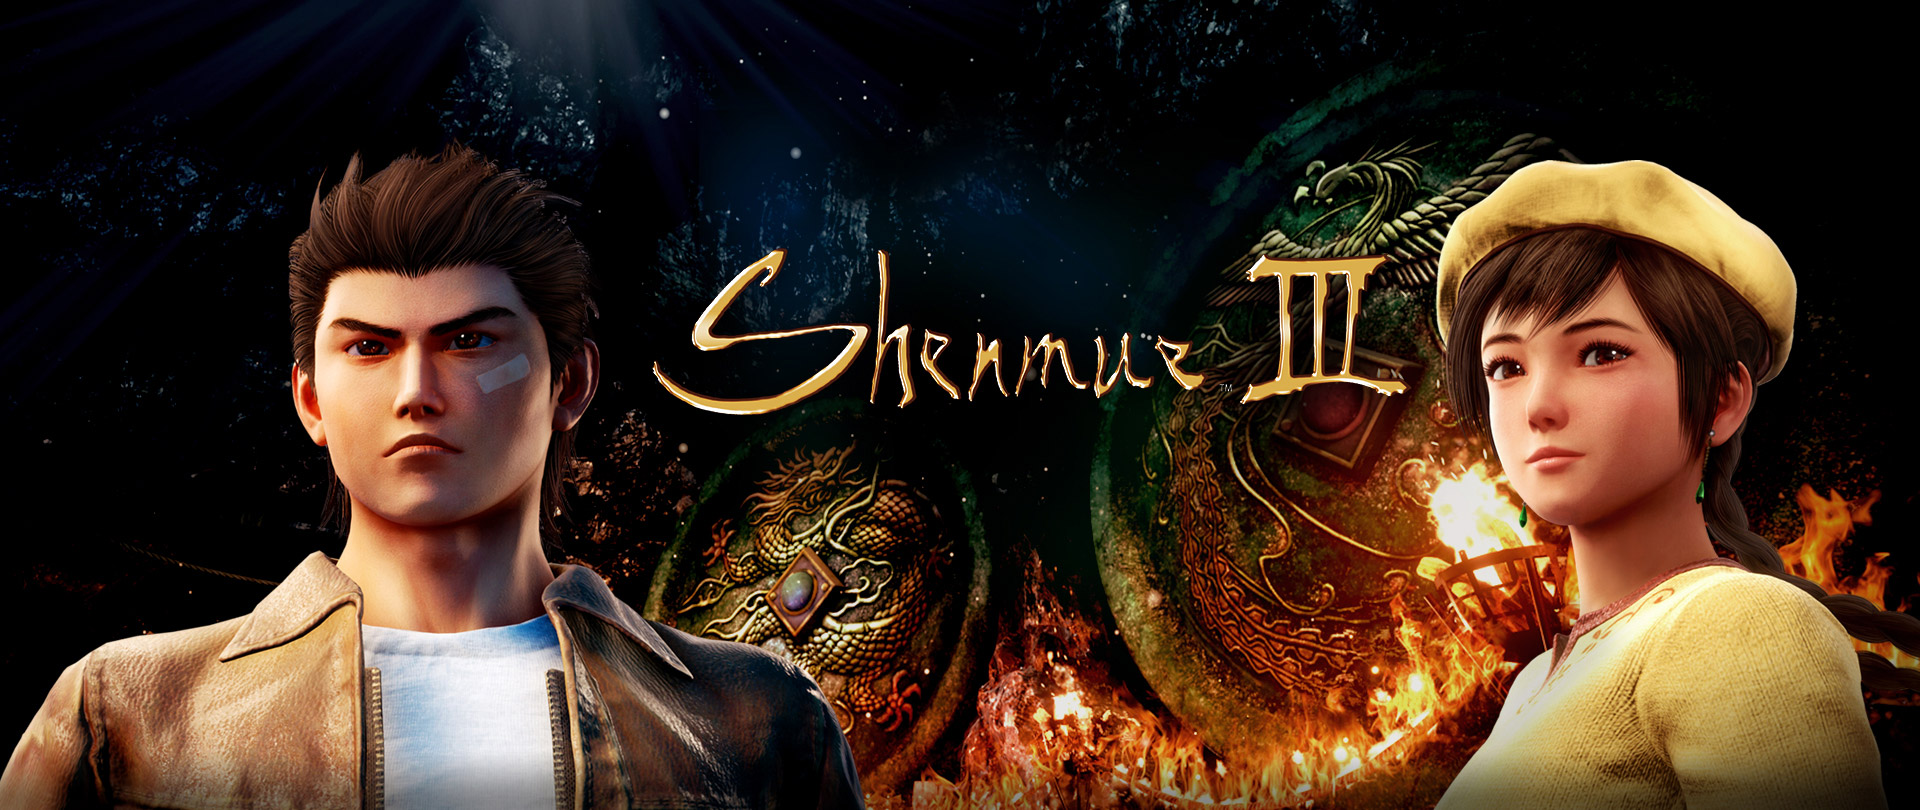 Shenmue 3 Video game